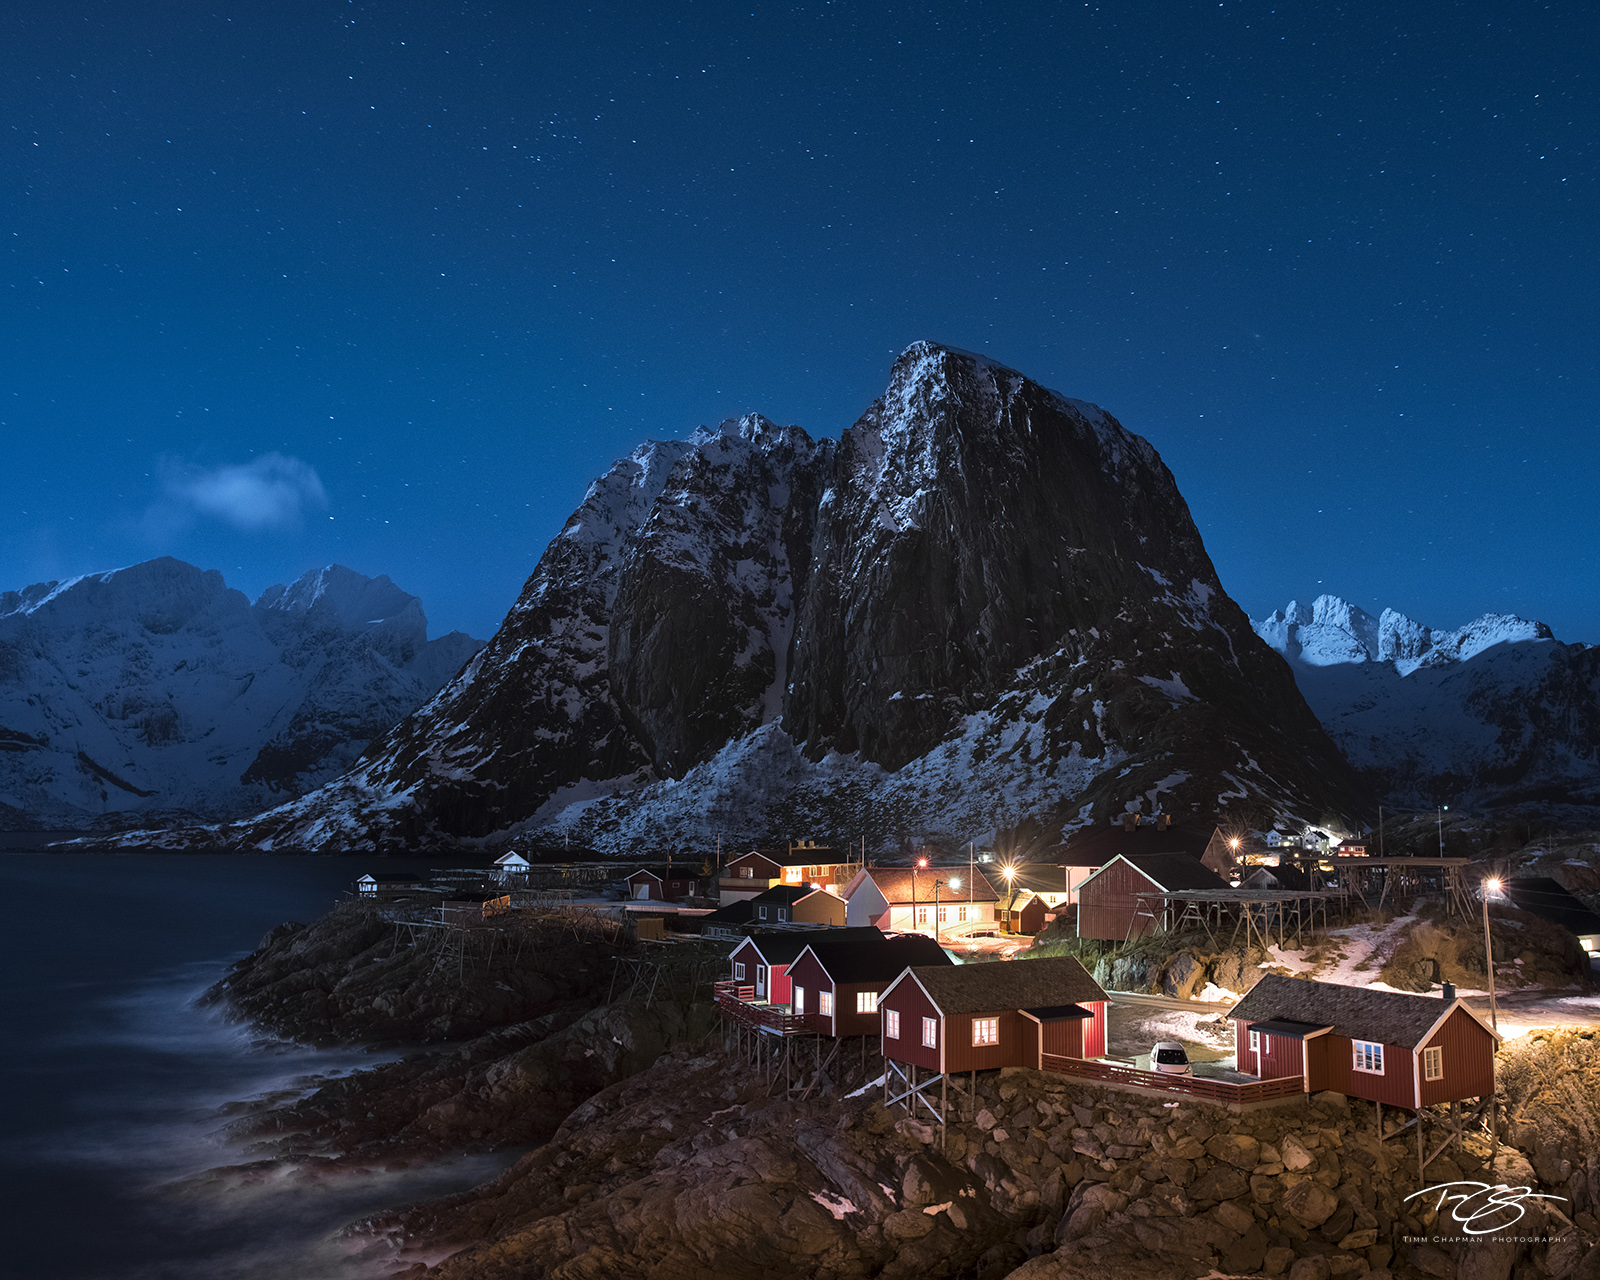 norway, gallery, lofoten, Hamnøy, hamnoy, Hamnøya, Sakrisøya, Sakrisoy, night, stars, clear skies, moody, tranquil, snow, fishing village, Moskenes, Reine, rorbu, rorbuer, Eliassen Rorbuer, winter, photo